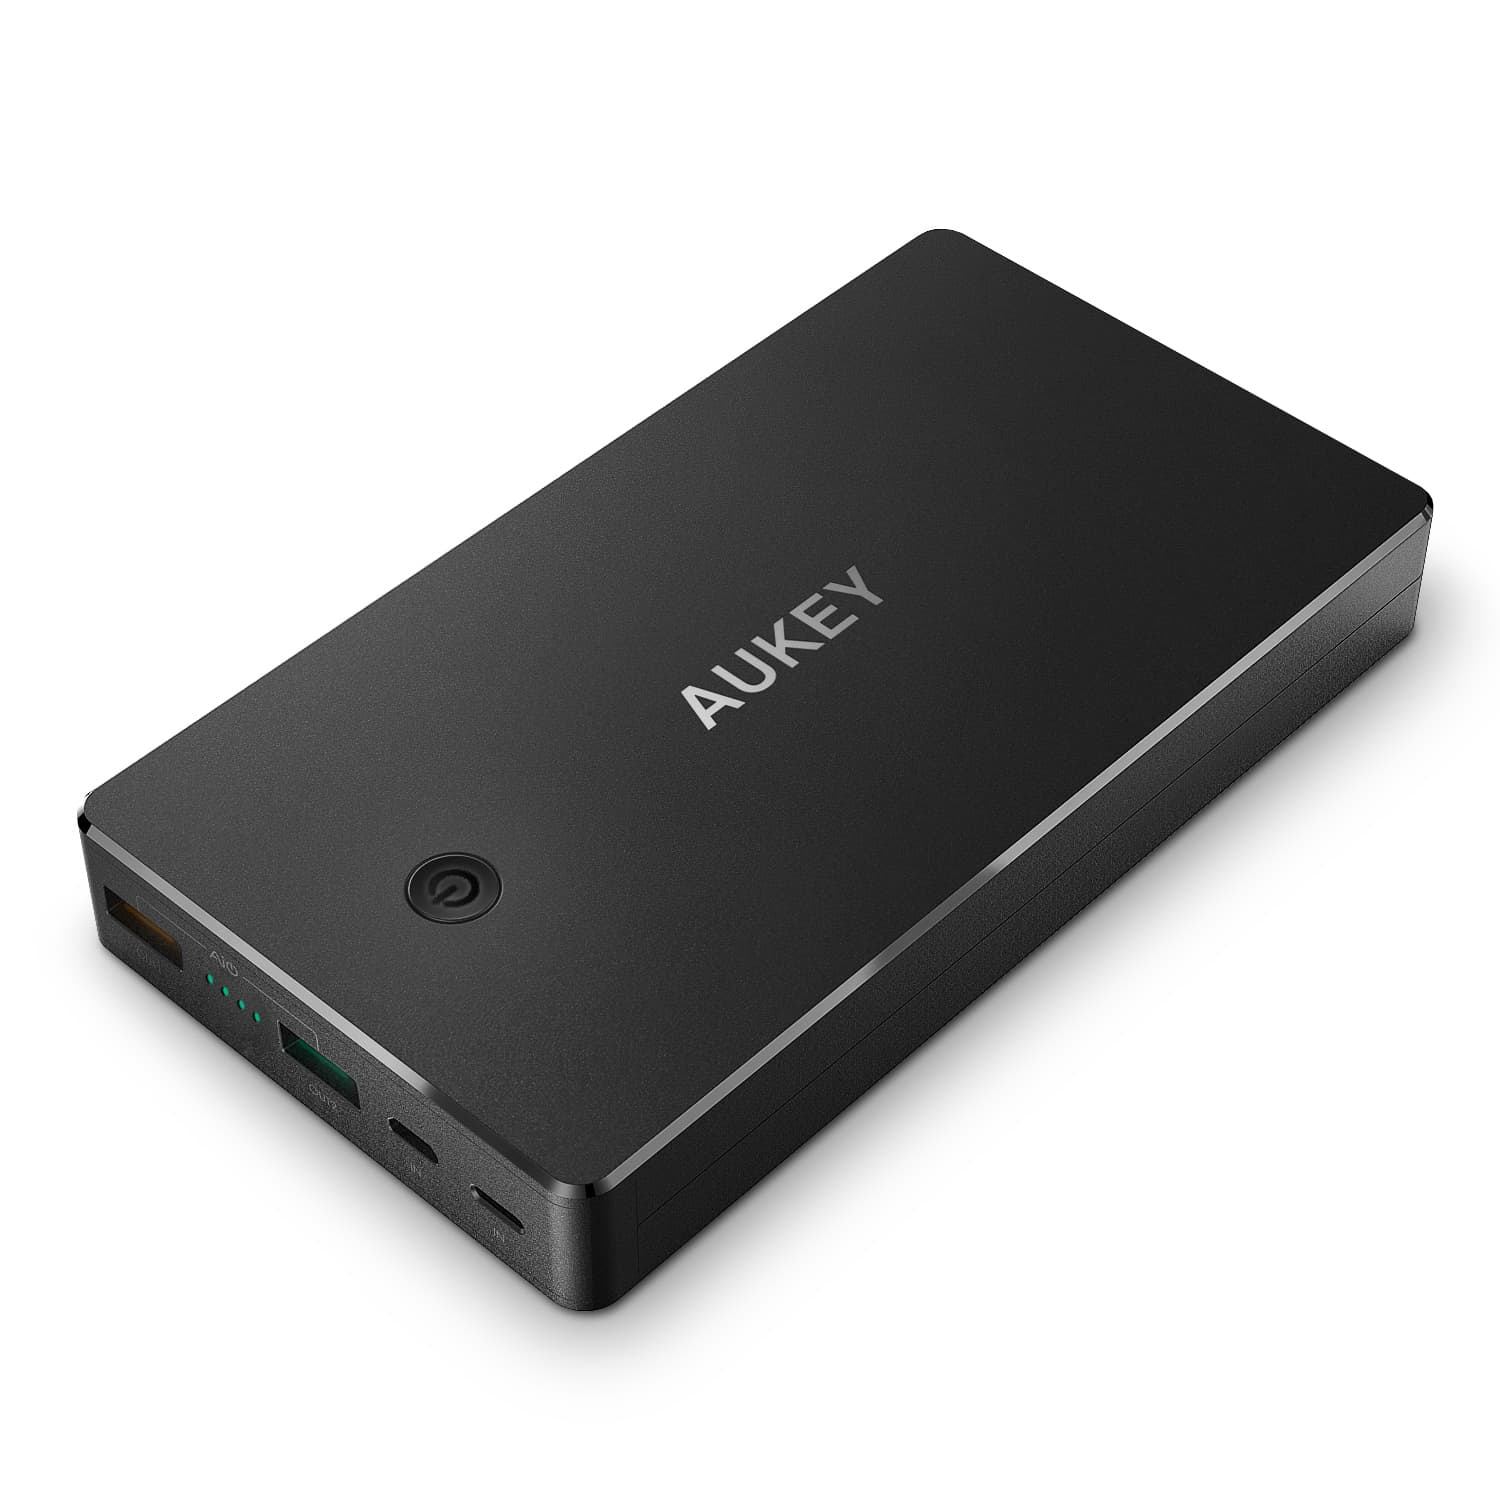 AUKEY PB-T10 V3 20000mAh Qualcomm Quick Charge 3.0 Power Bank with FCP - Aukey Malaysia Official Store